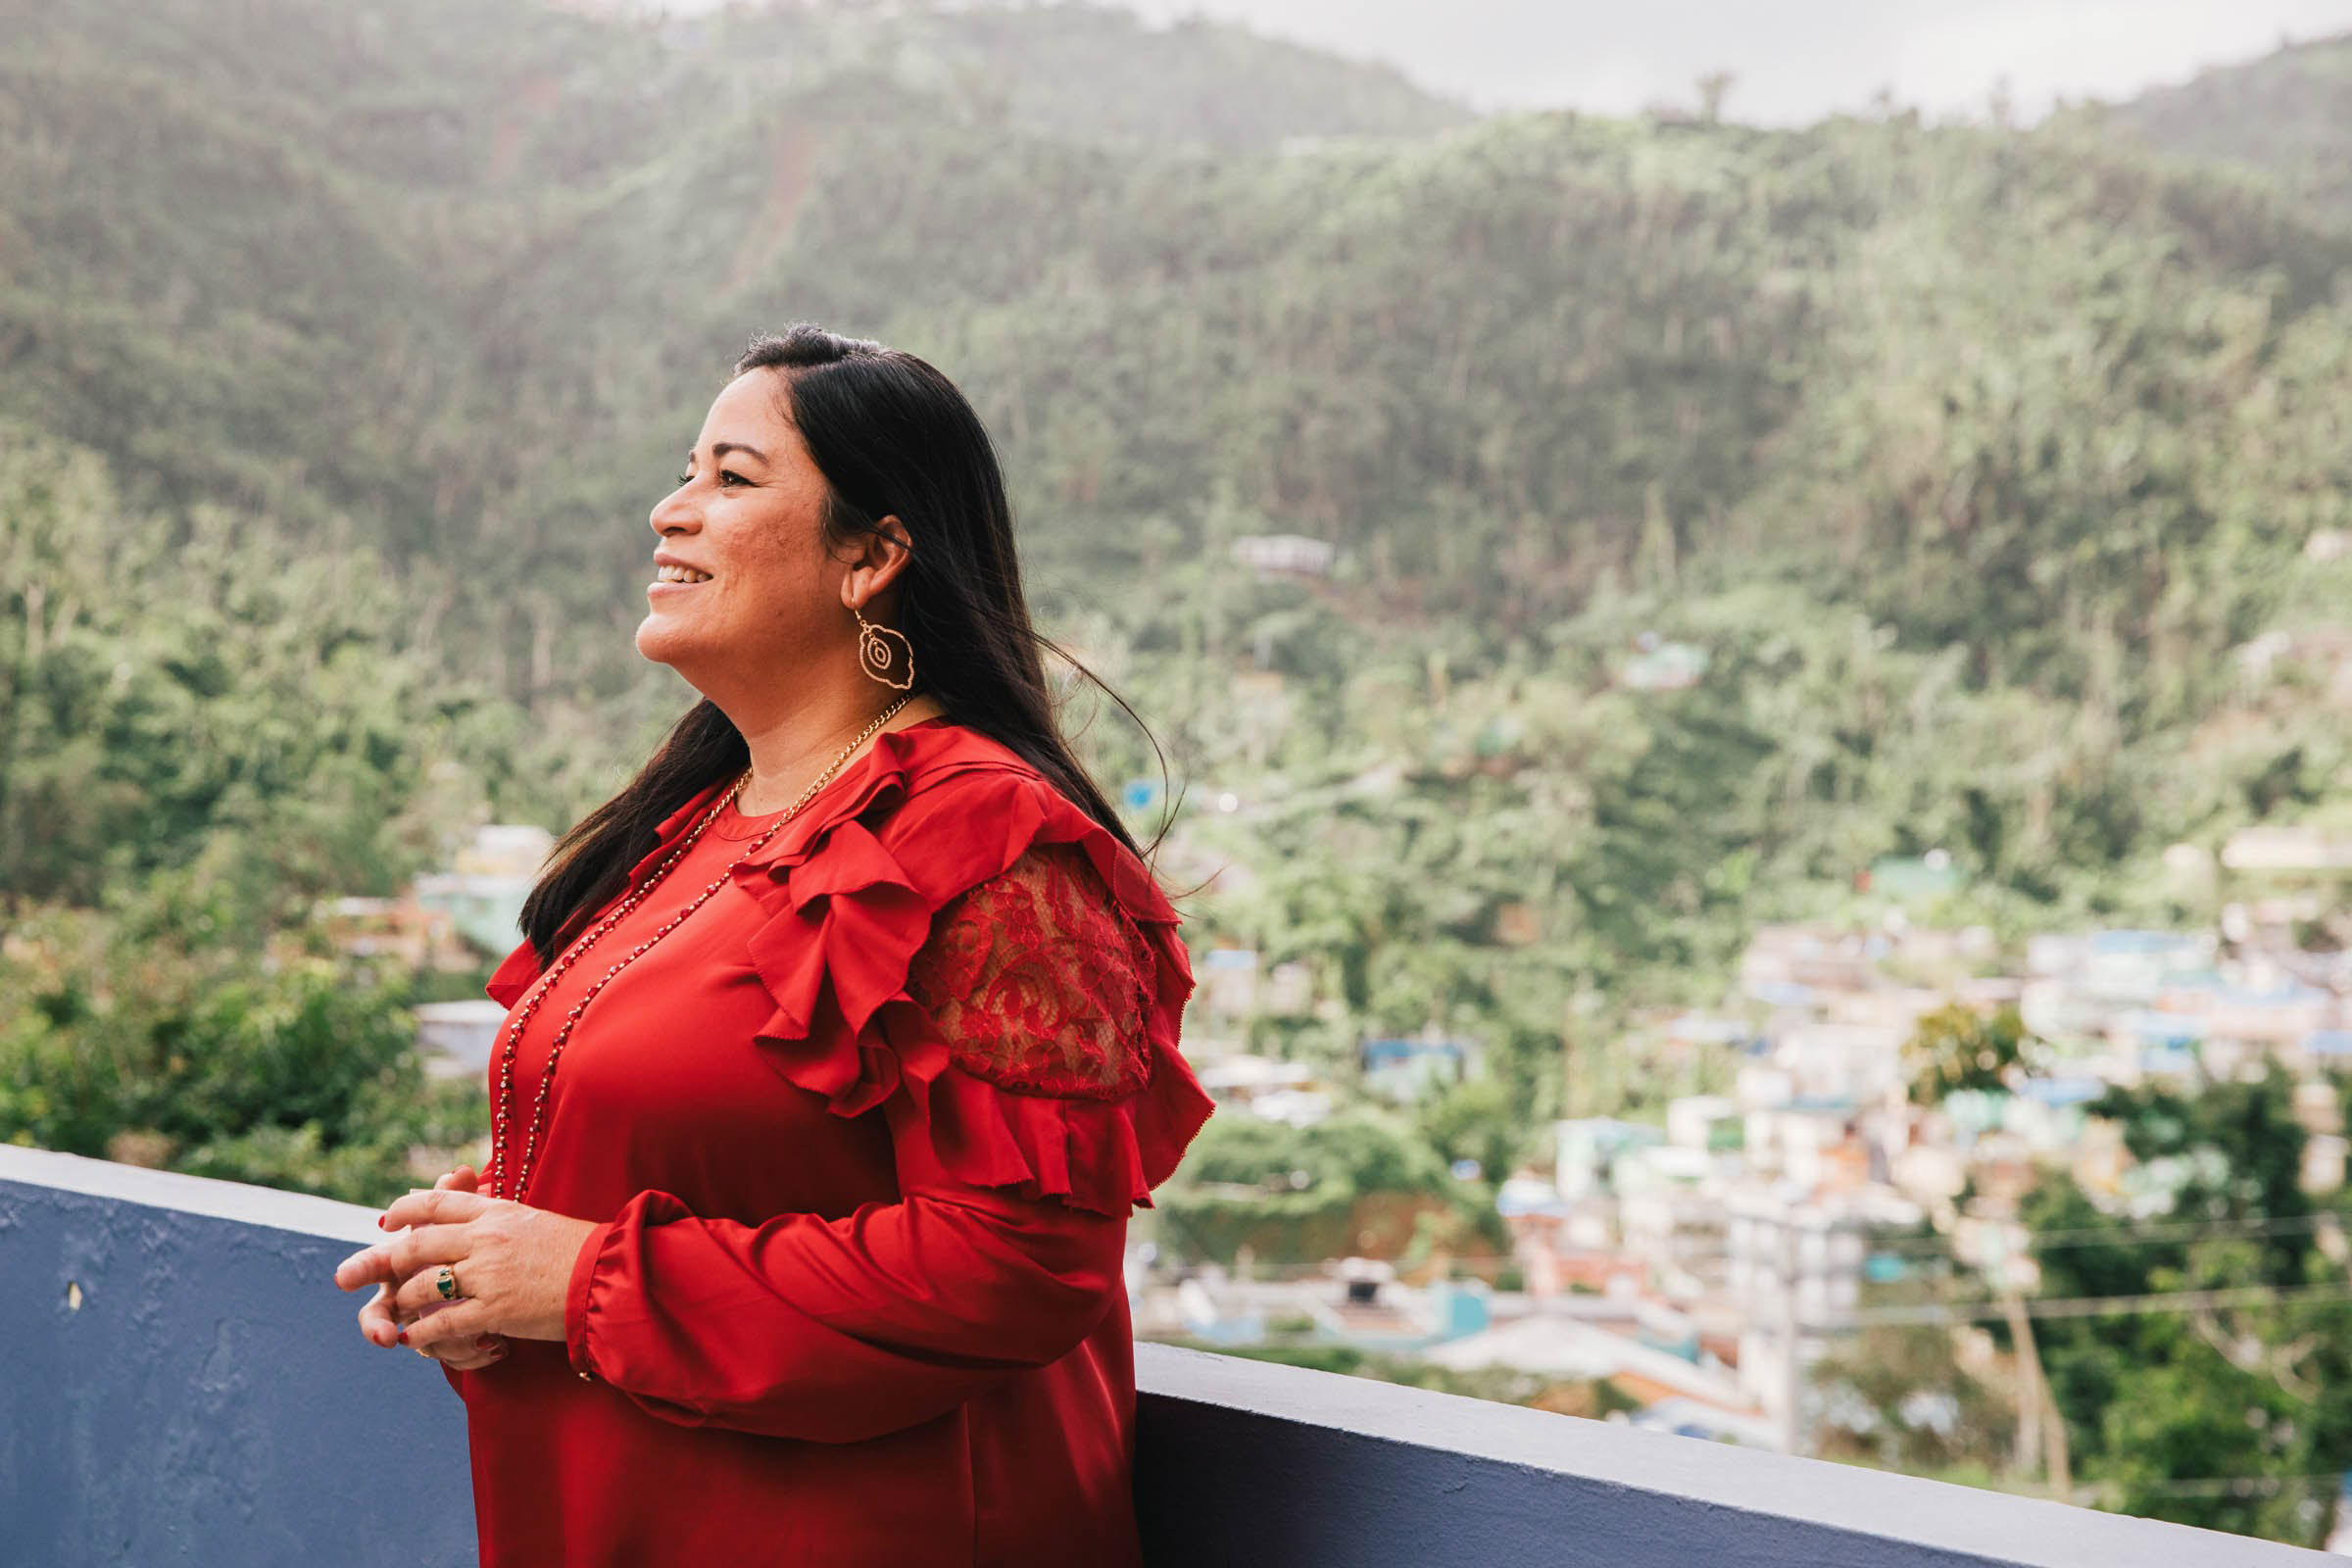 "Gloria del C. Amador Fernández, executive director of Salud Integral de la Montana Health Center, overlooks the mountain community of Naranjito on Dec. 17, 2017. During Hurricane Maria's high winds, the health center stayed open. ""We were the only ones providing care on the mountain,"" she said. (Photo by Donnie Hedden for Direct Relief)"